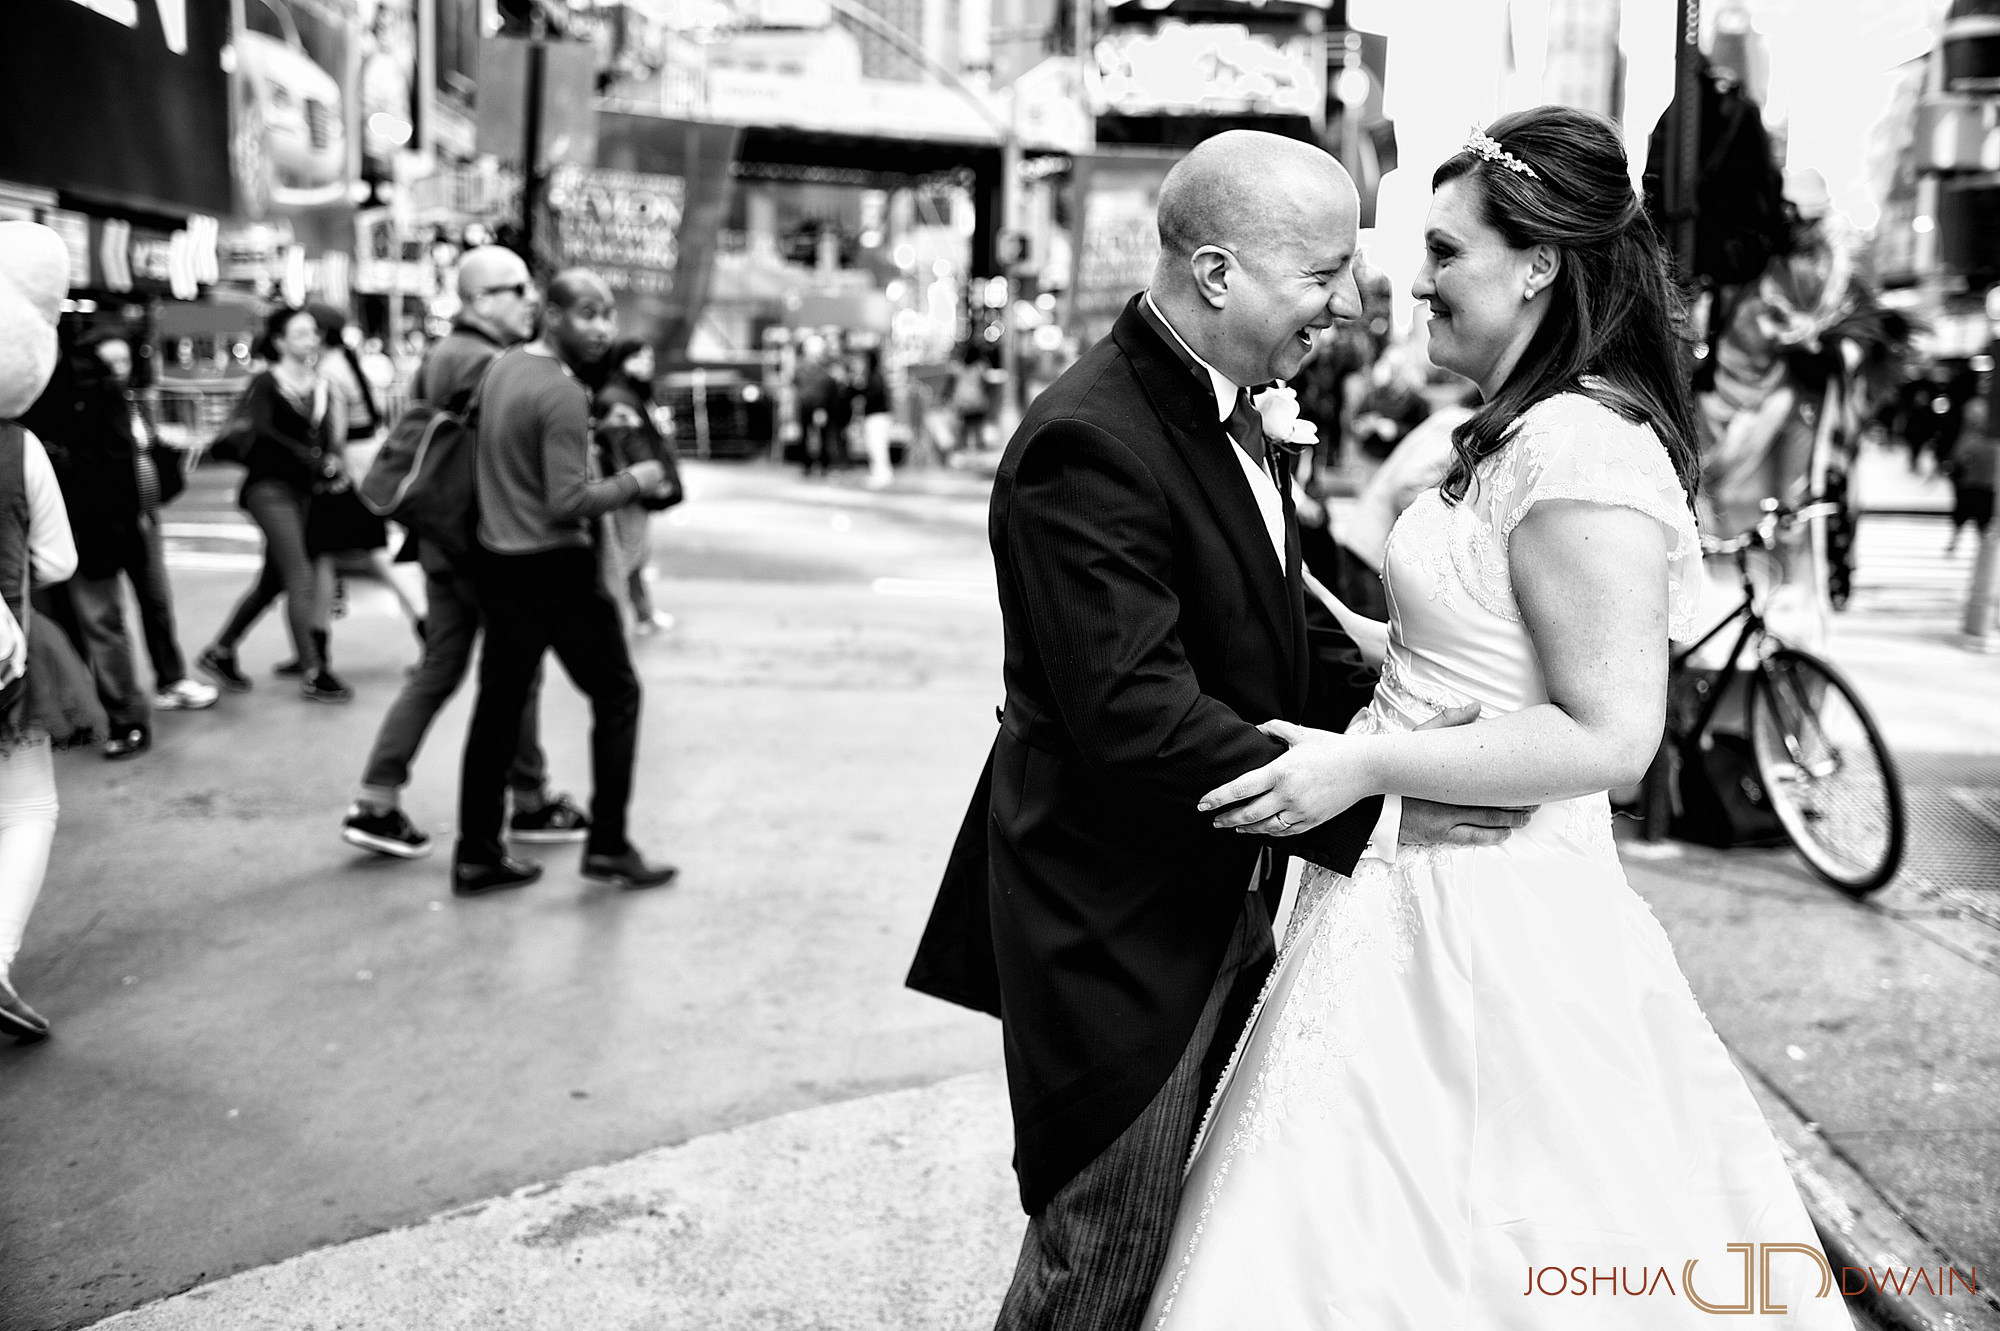 new-york-city-elopement-wedding-photography-025-joshua-dwain